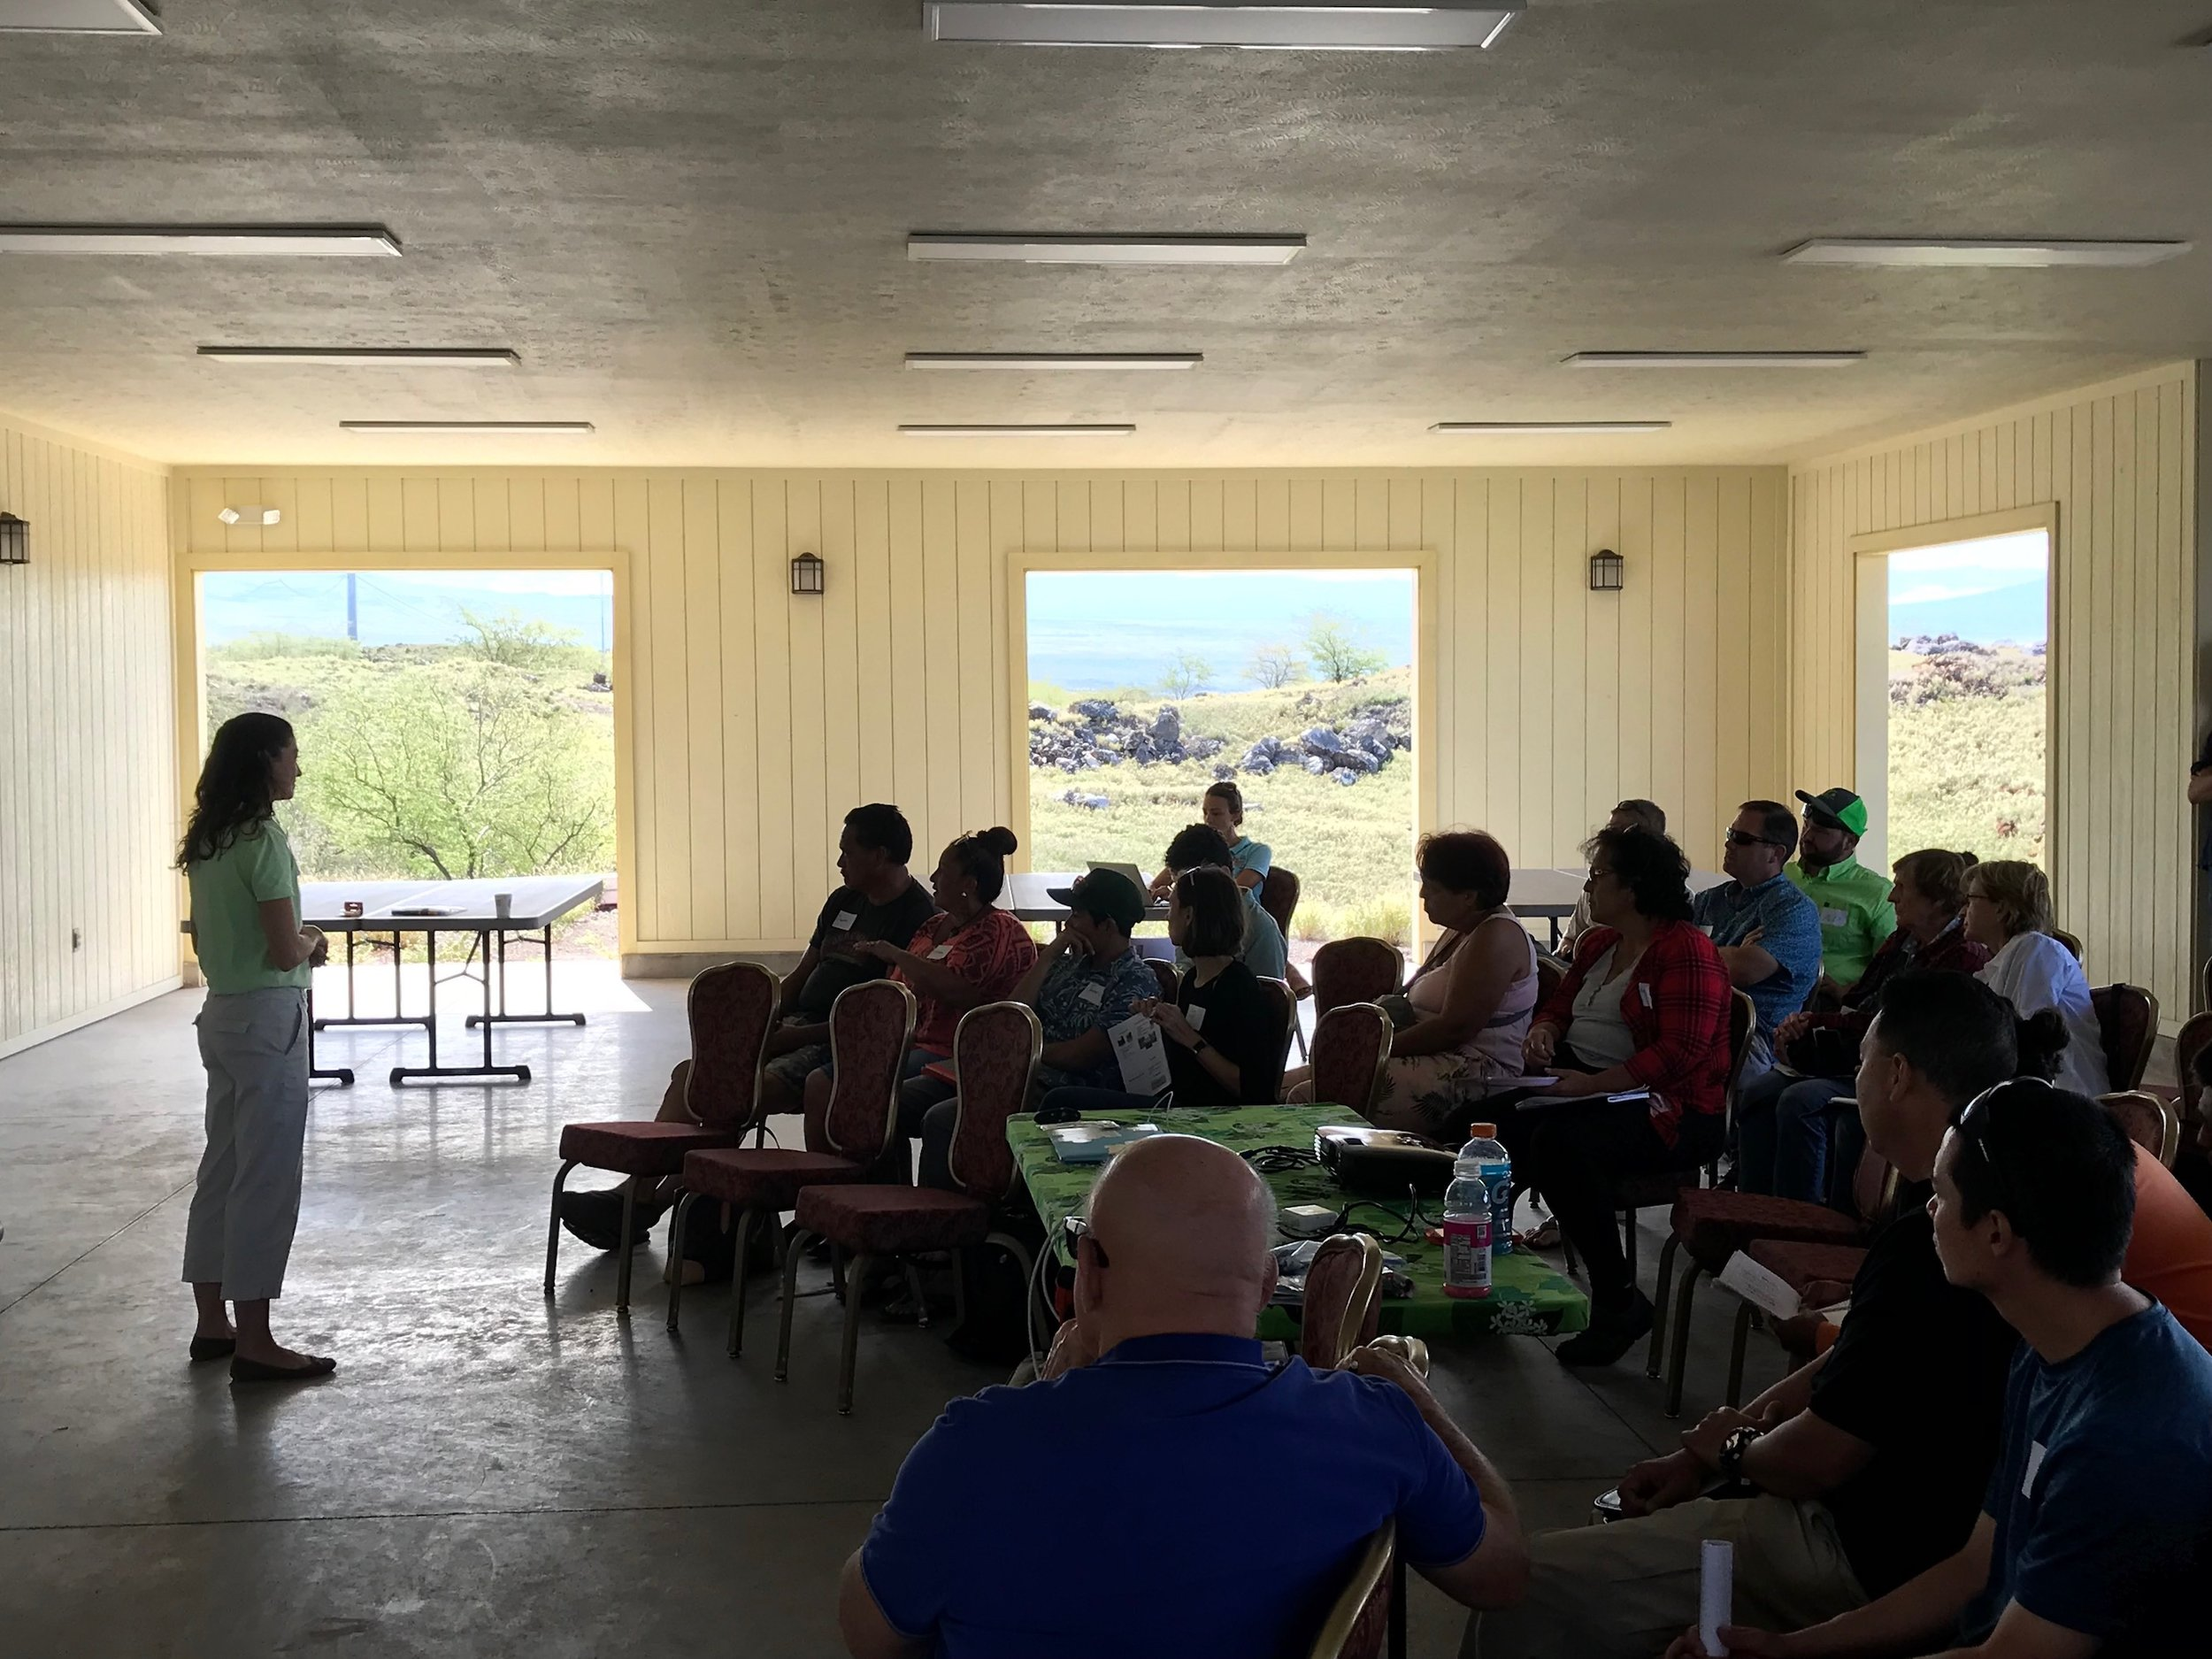 Hawaii Island Kailapa Vegetative Fuels Management Collaborative Action Planning Workshop_2_26_2019_55.jpg